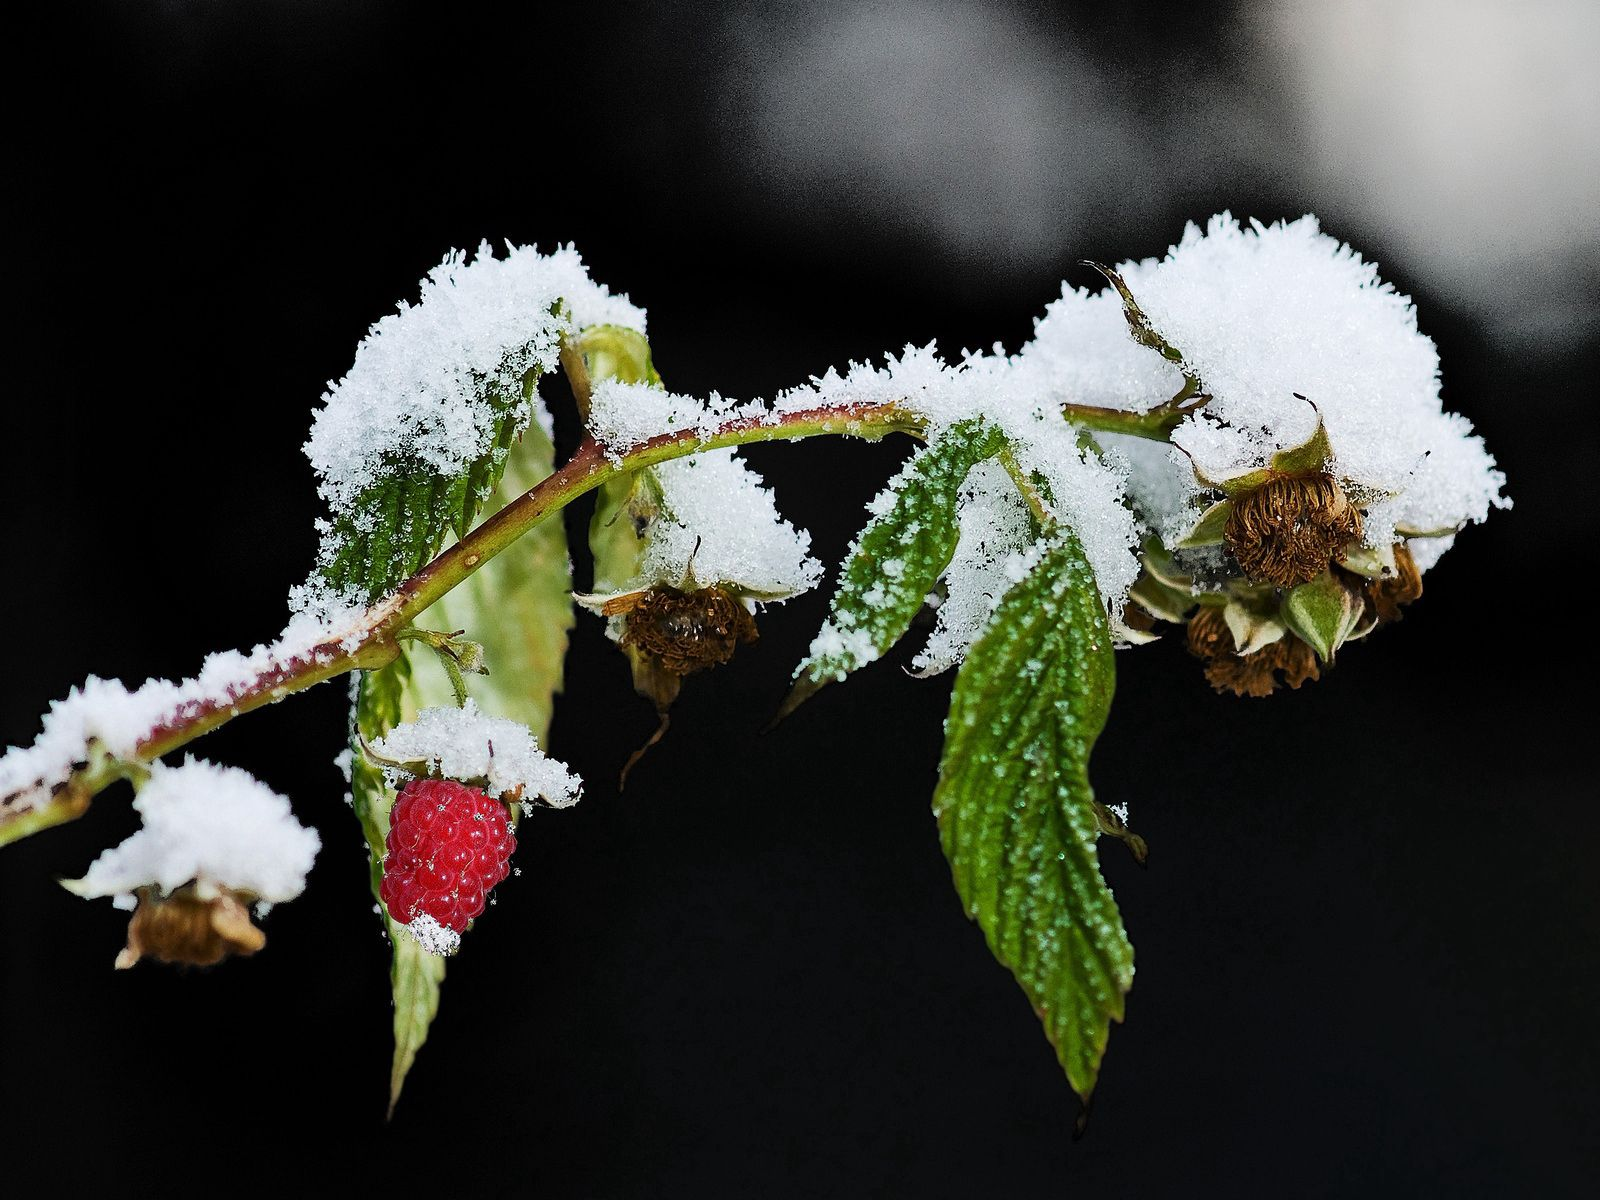 82837 download wallpaper Winter, Food, Snow, Raspberry, Branch screensavers and pictures for free